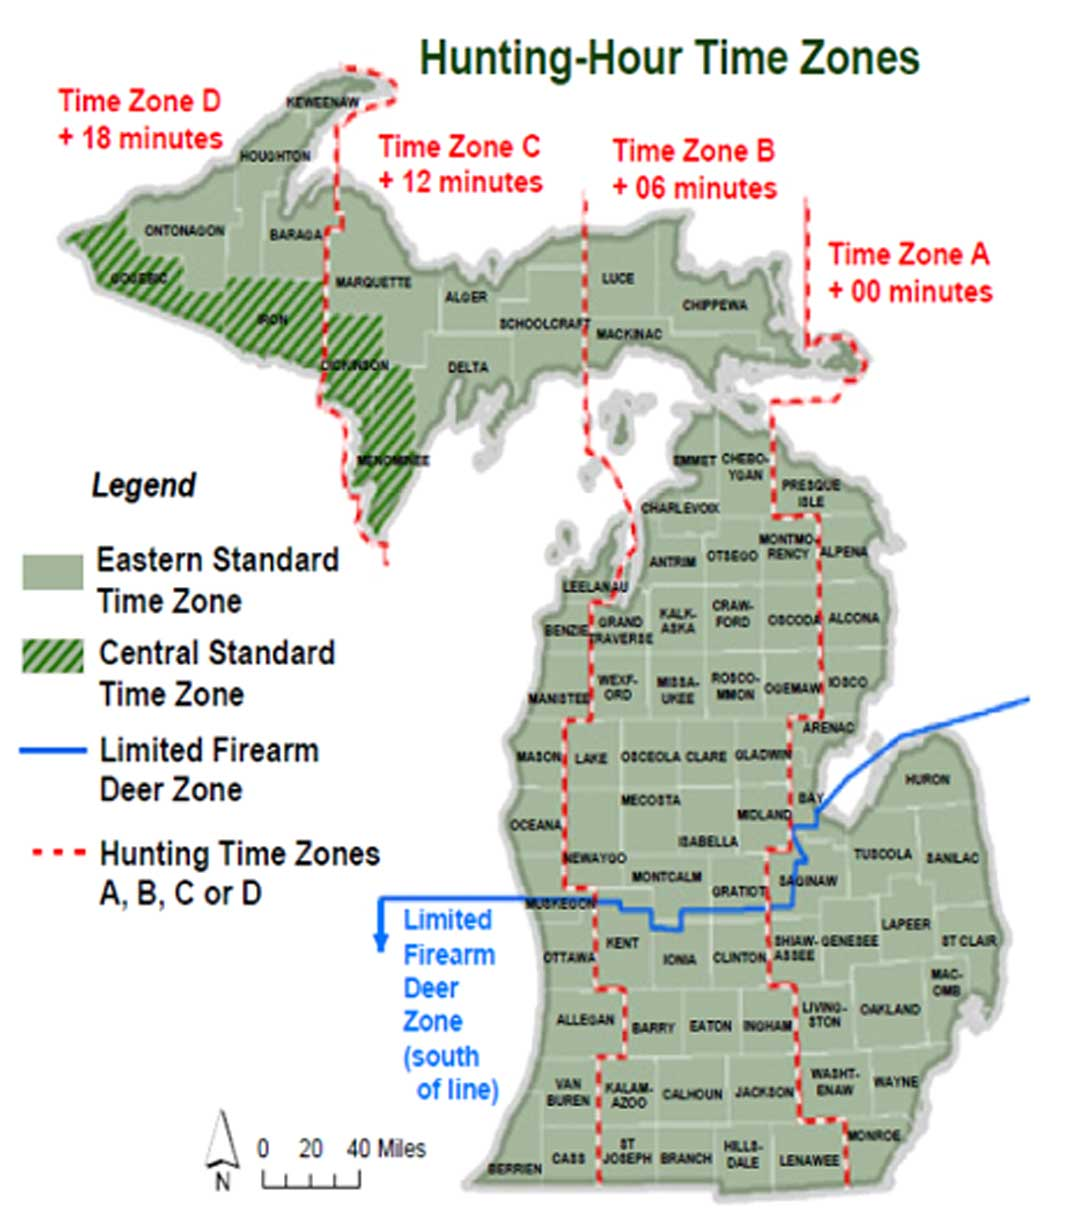 michigan hunting laws hunting hour time zone